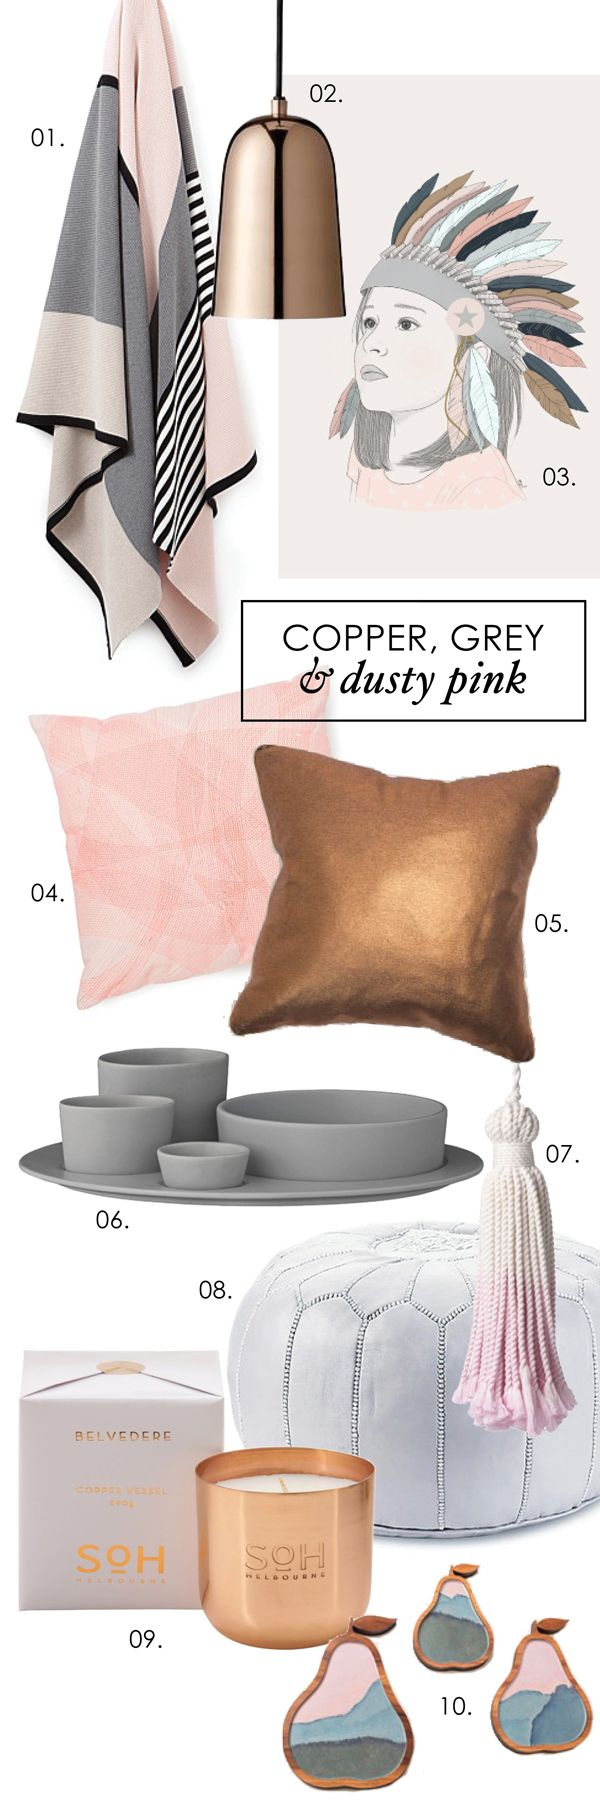 Copper Grey and Dusty Pink...I absolutely adore this combo!